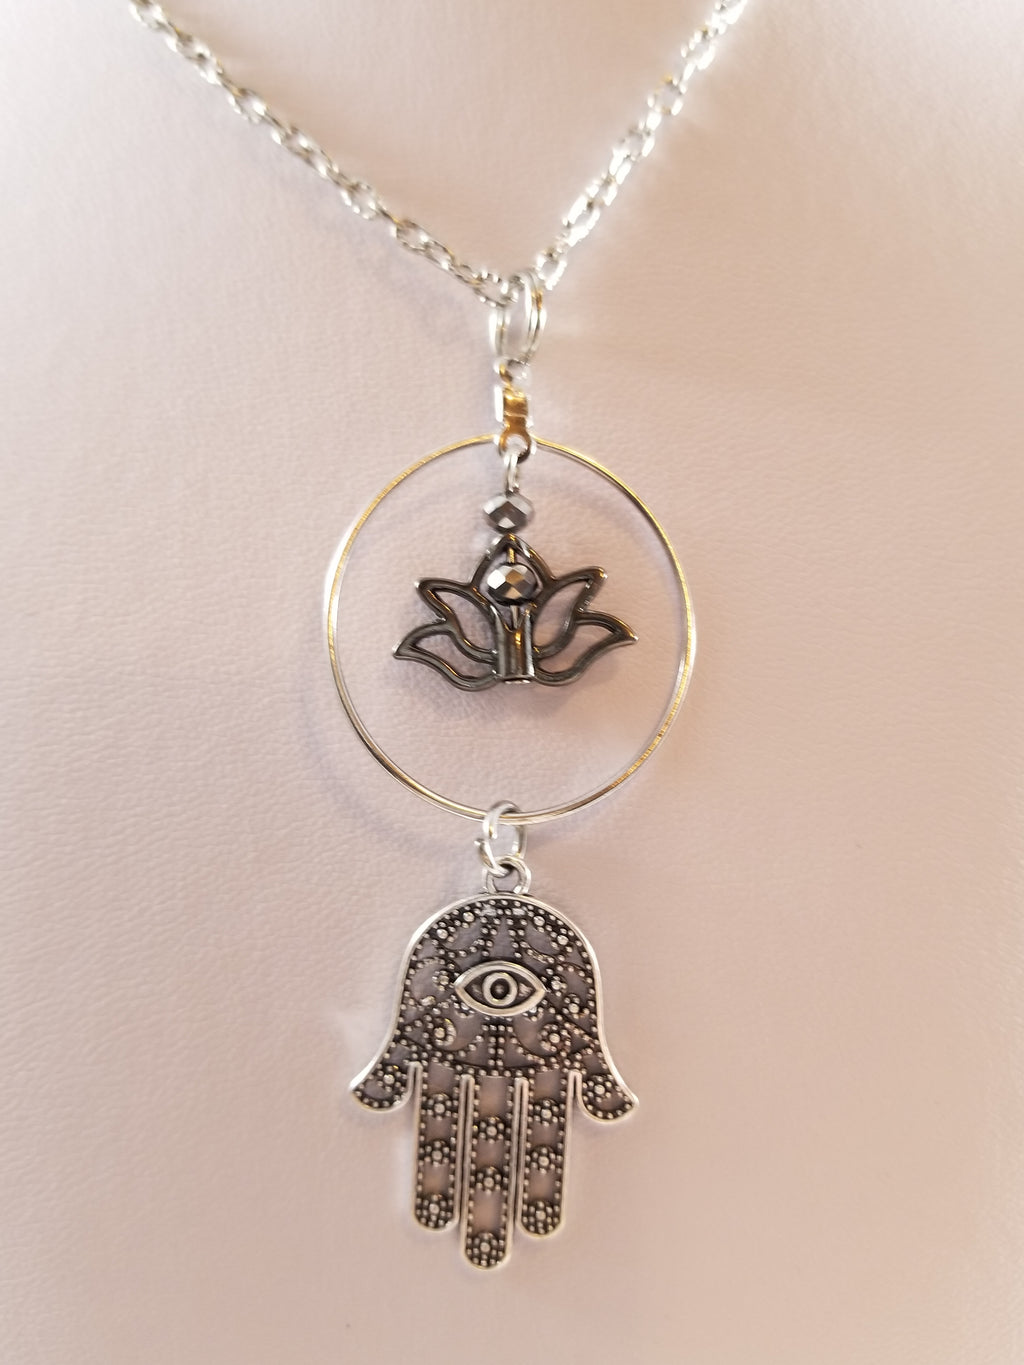 Hamsa Simply Charming Necklace